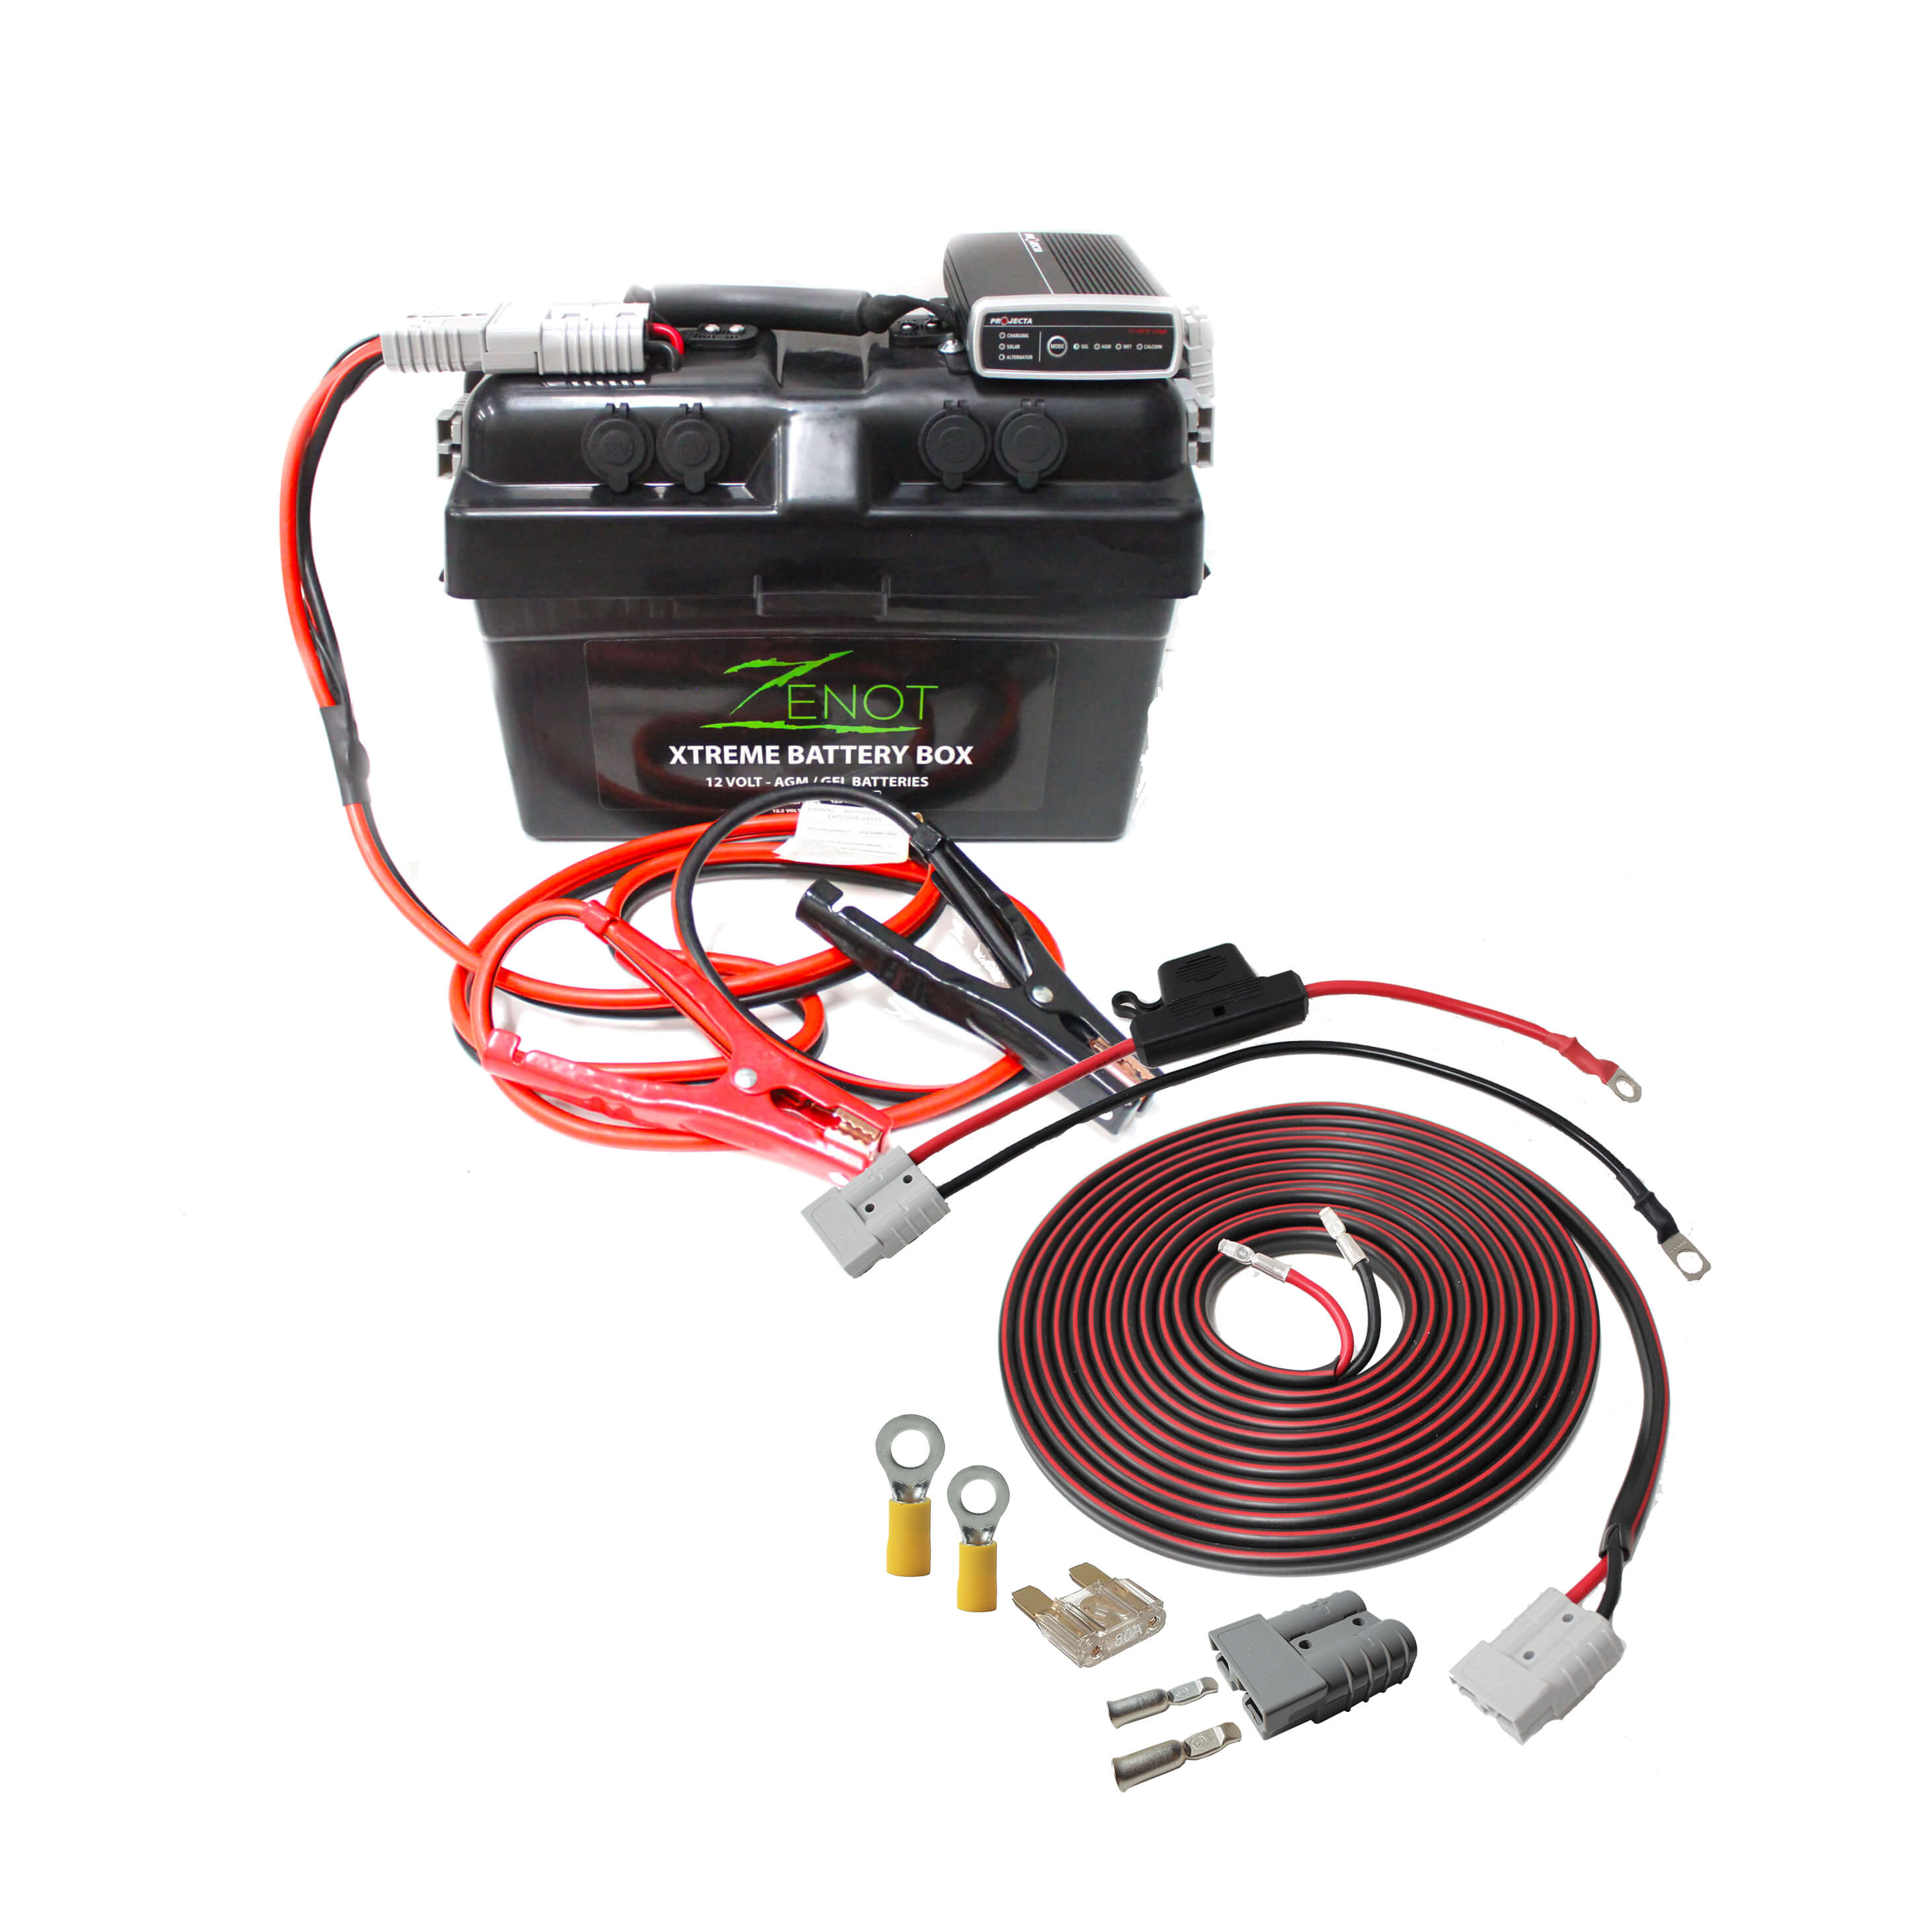 quality built zenot extreme battery box with dc dc charger, jump starter &  wiring kit | all 12 volt